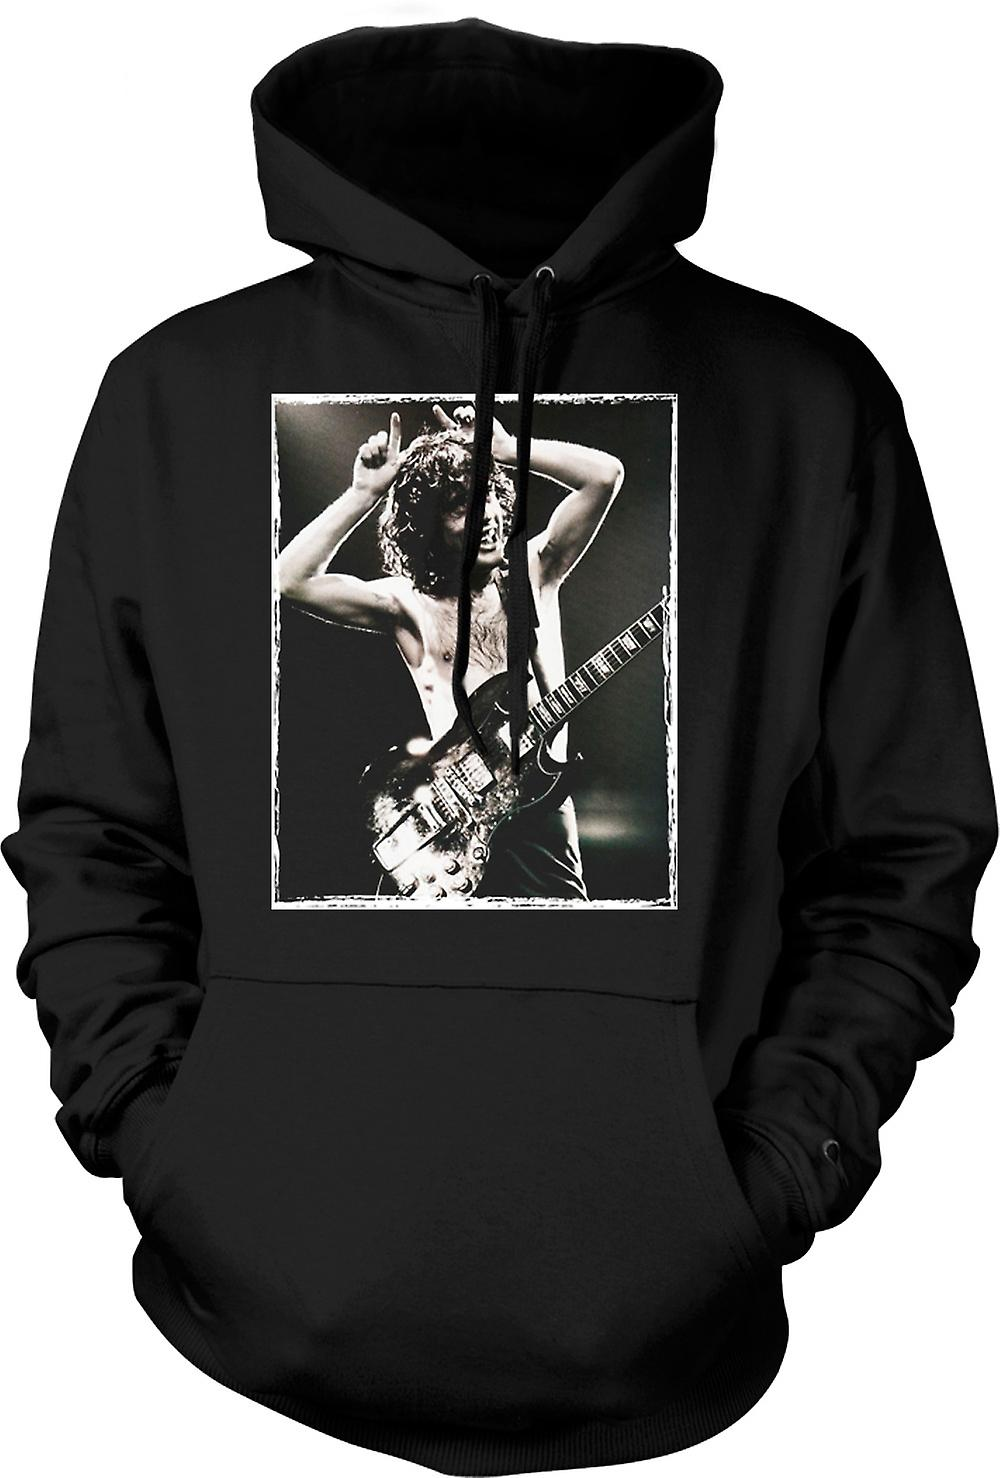 Kids Hoodie - AC/DC - Angus Young Portrait